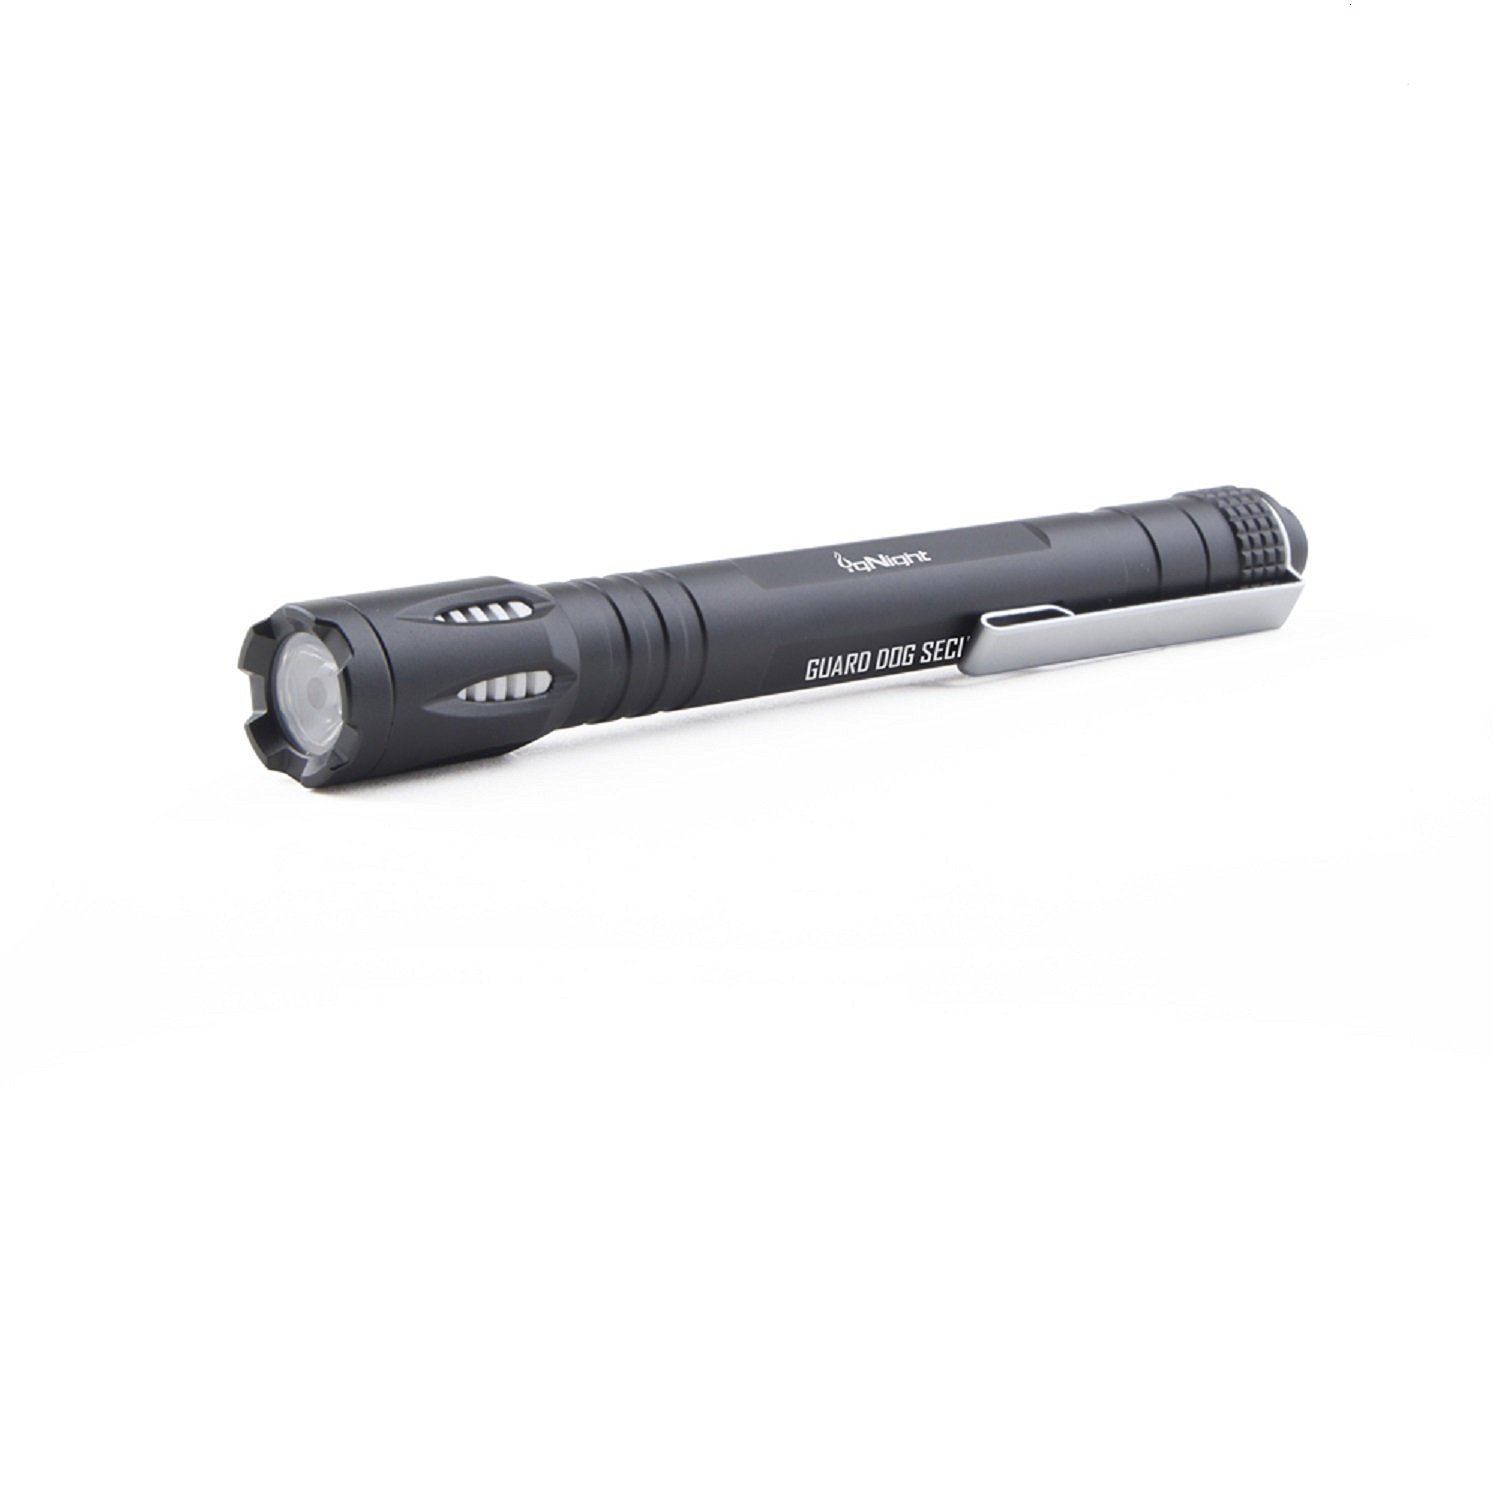 Guard Dog Security igNight 120 Lumen Pen Light, 3 Functions